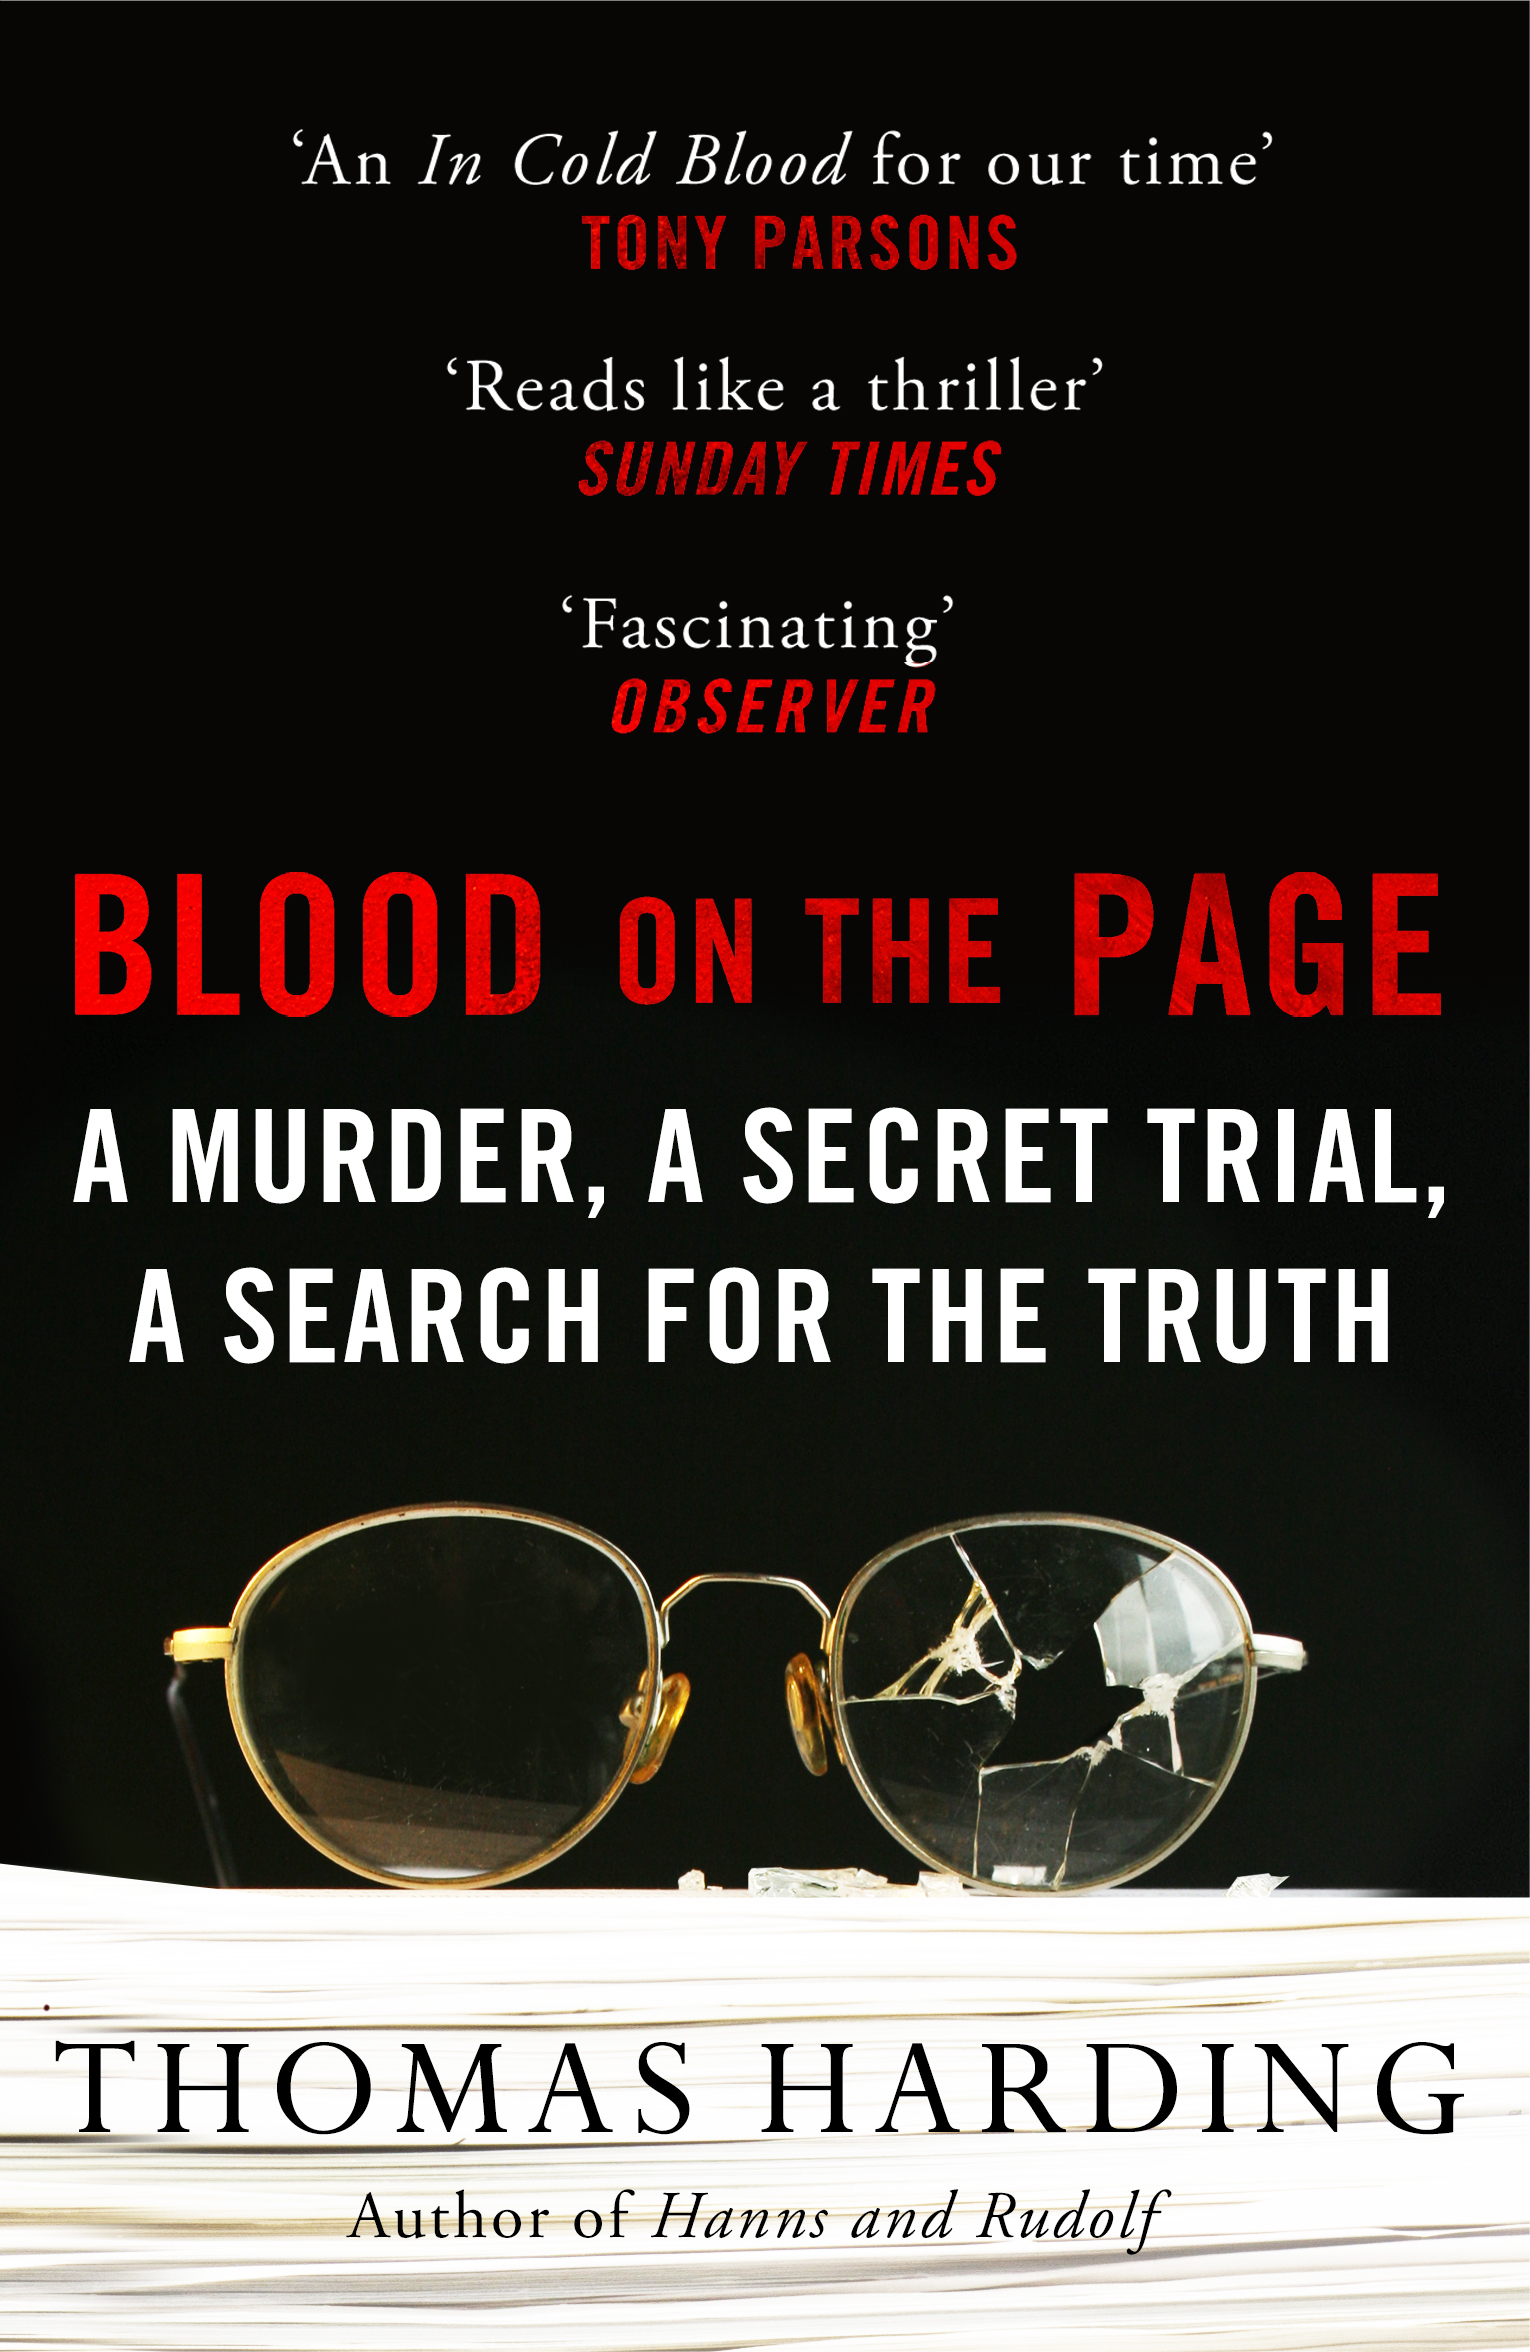 Winner of the Gold Dagger prize for non-fiction 2018. Extracted in Sunday Times. TV rights optioned.